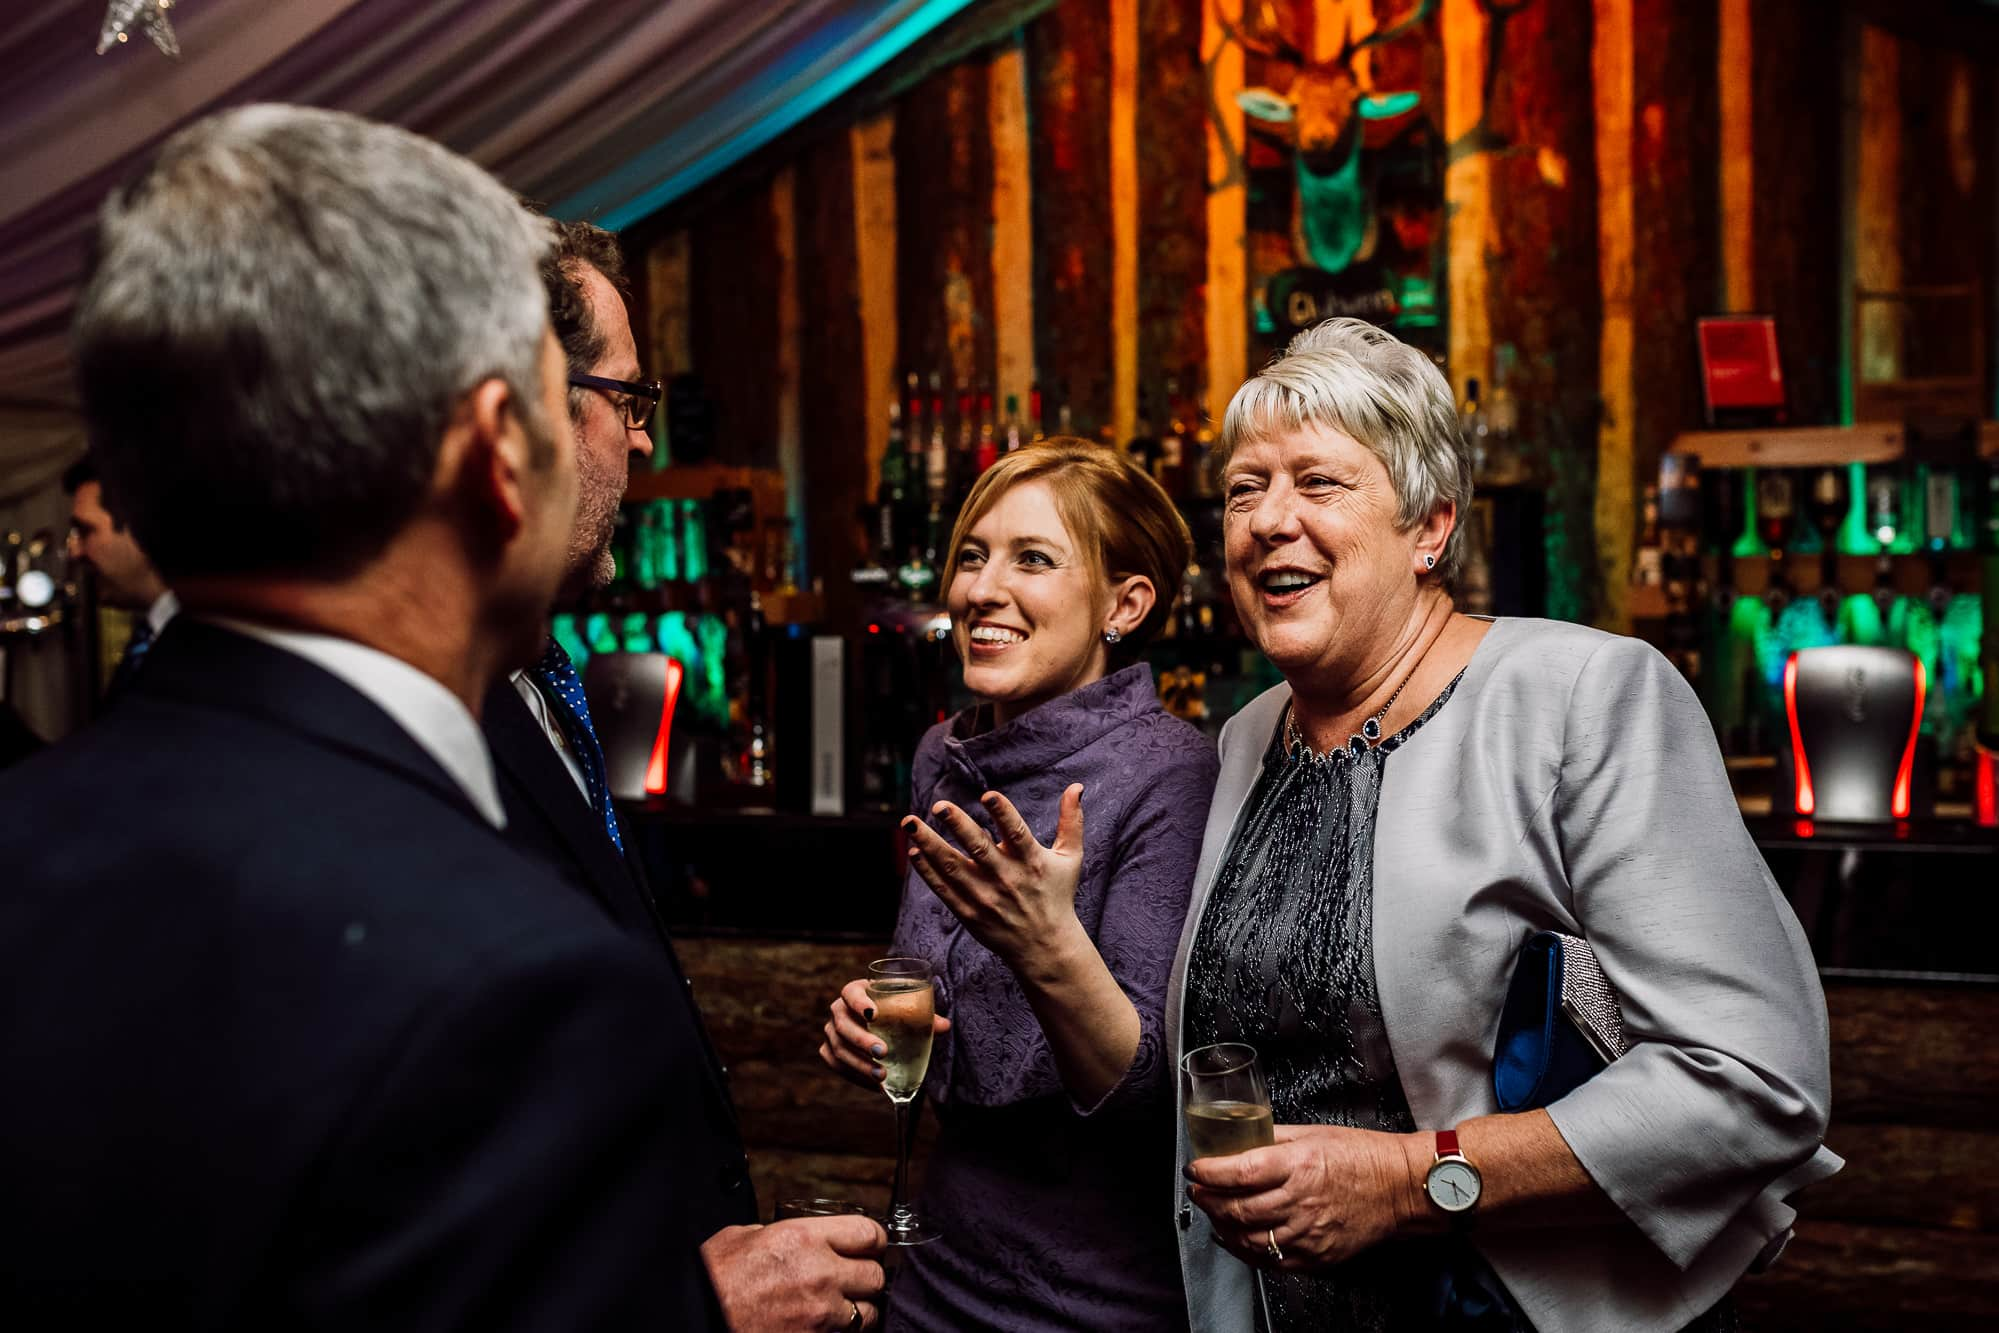 Guests laughing during reception drinks at Heaton House fARM